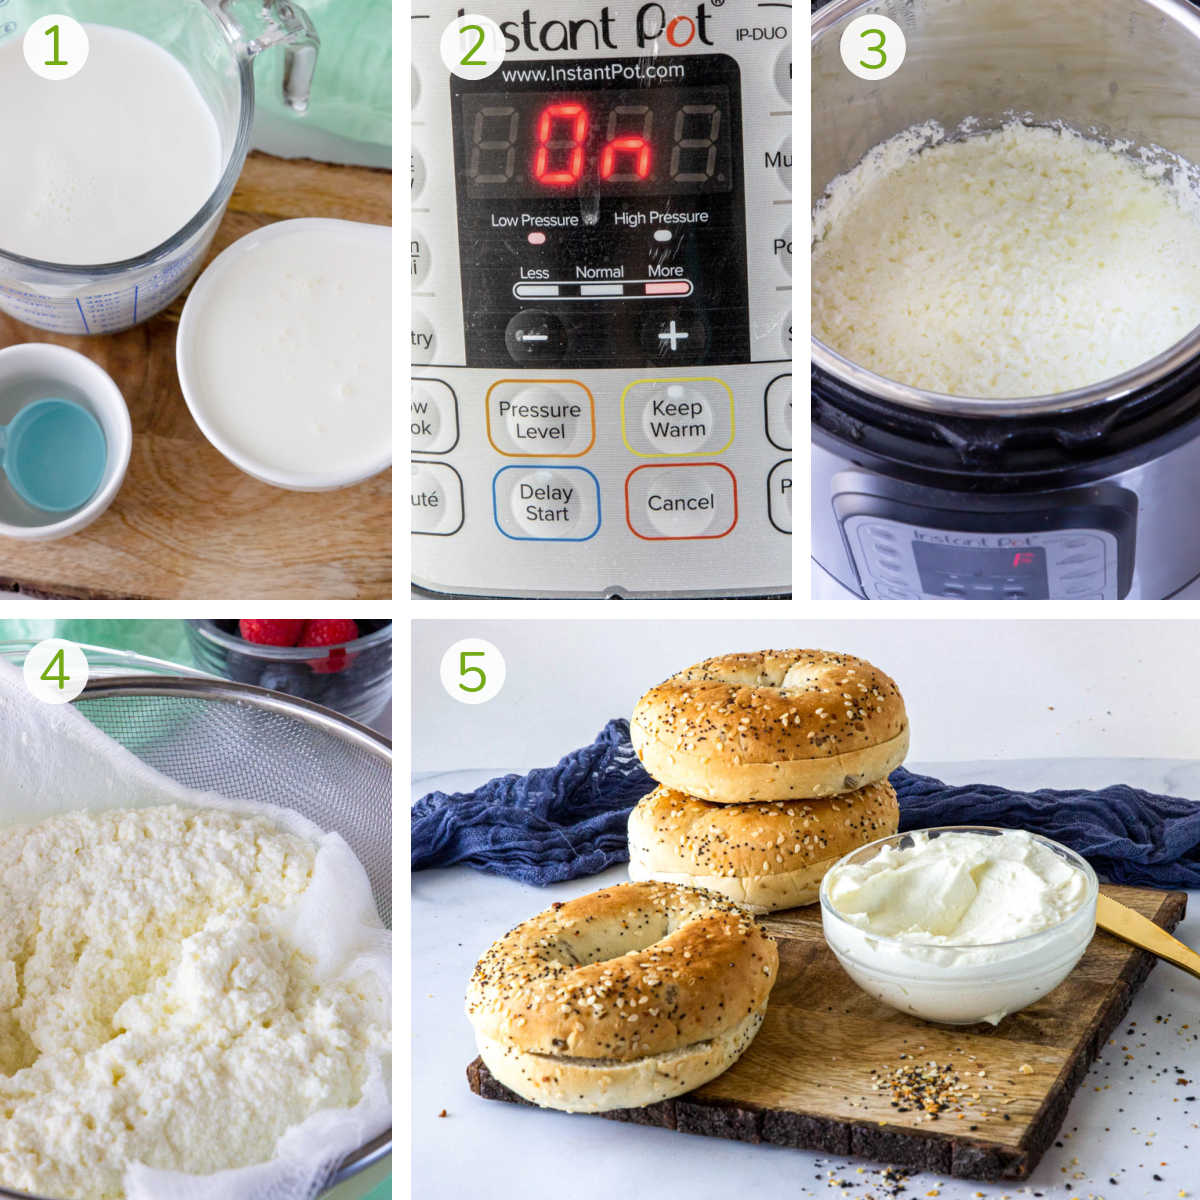 process photos showing combining the ingredients in the instant pot, filtering it through a cheese cloth and scooping in a bowl.